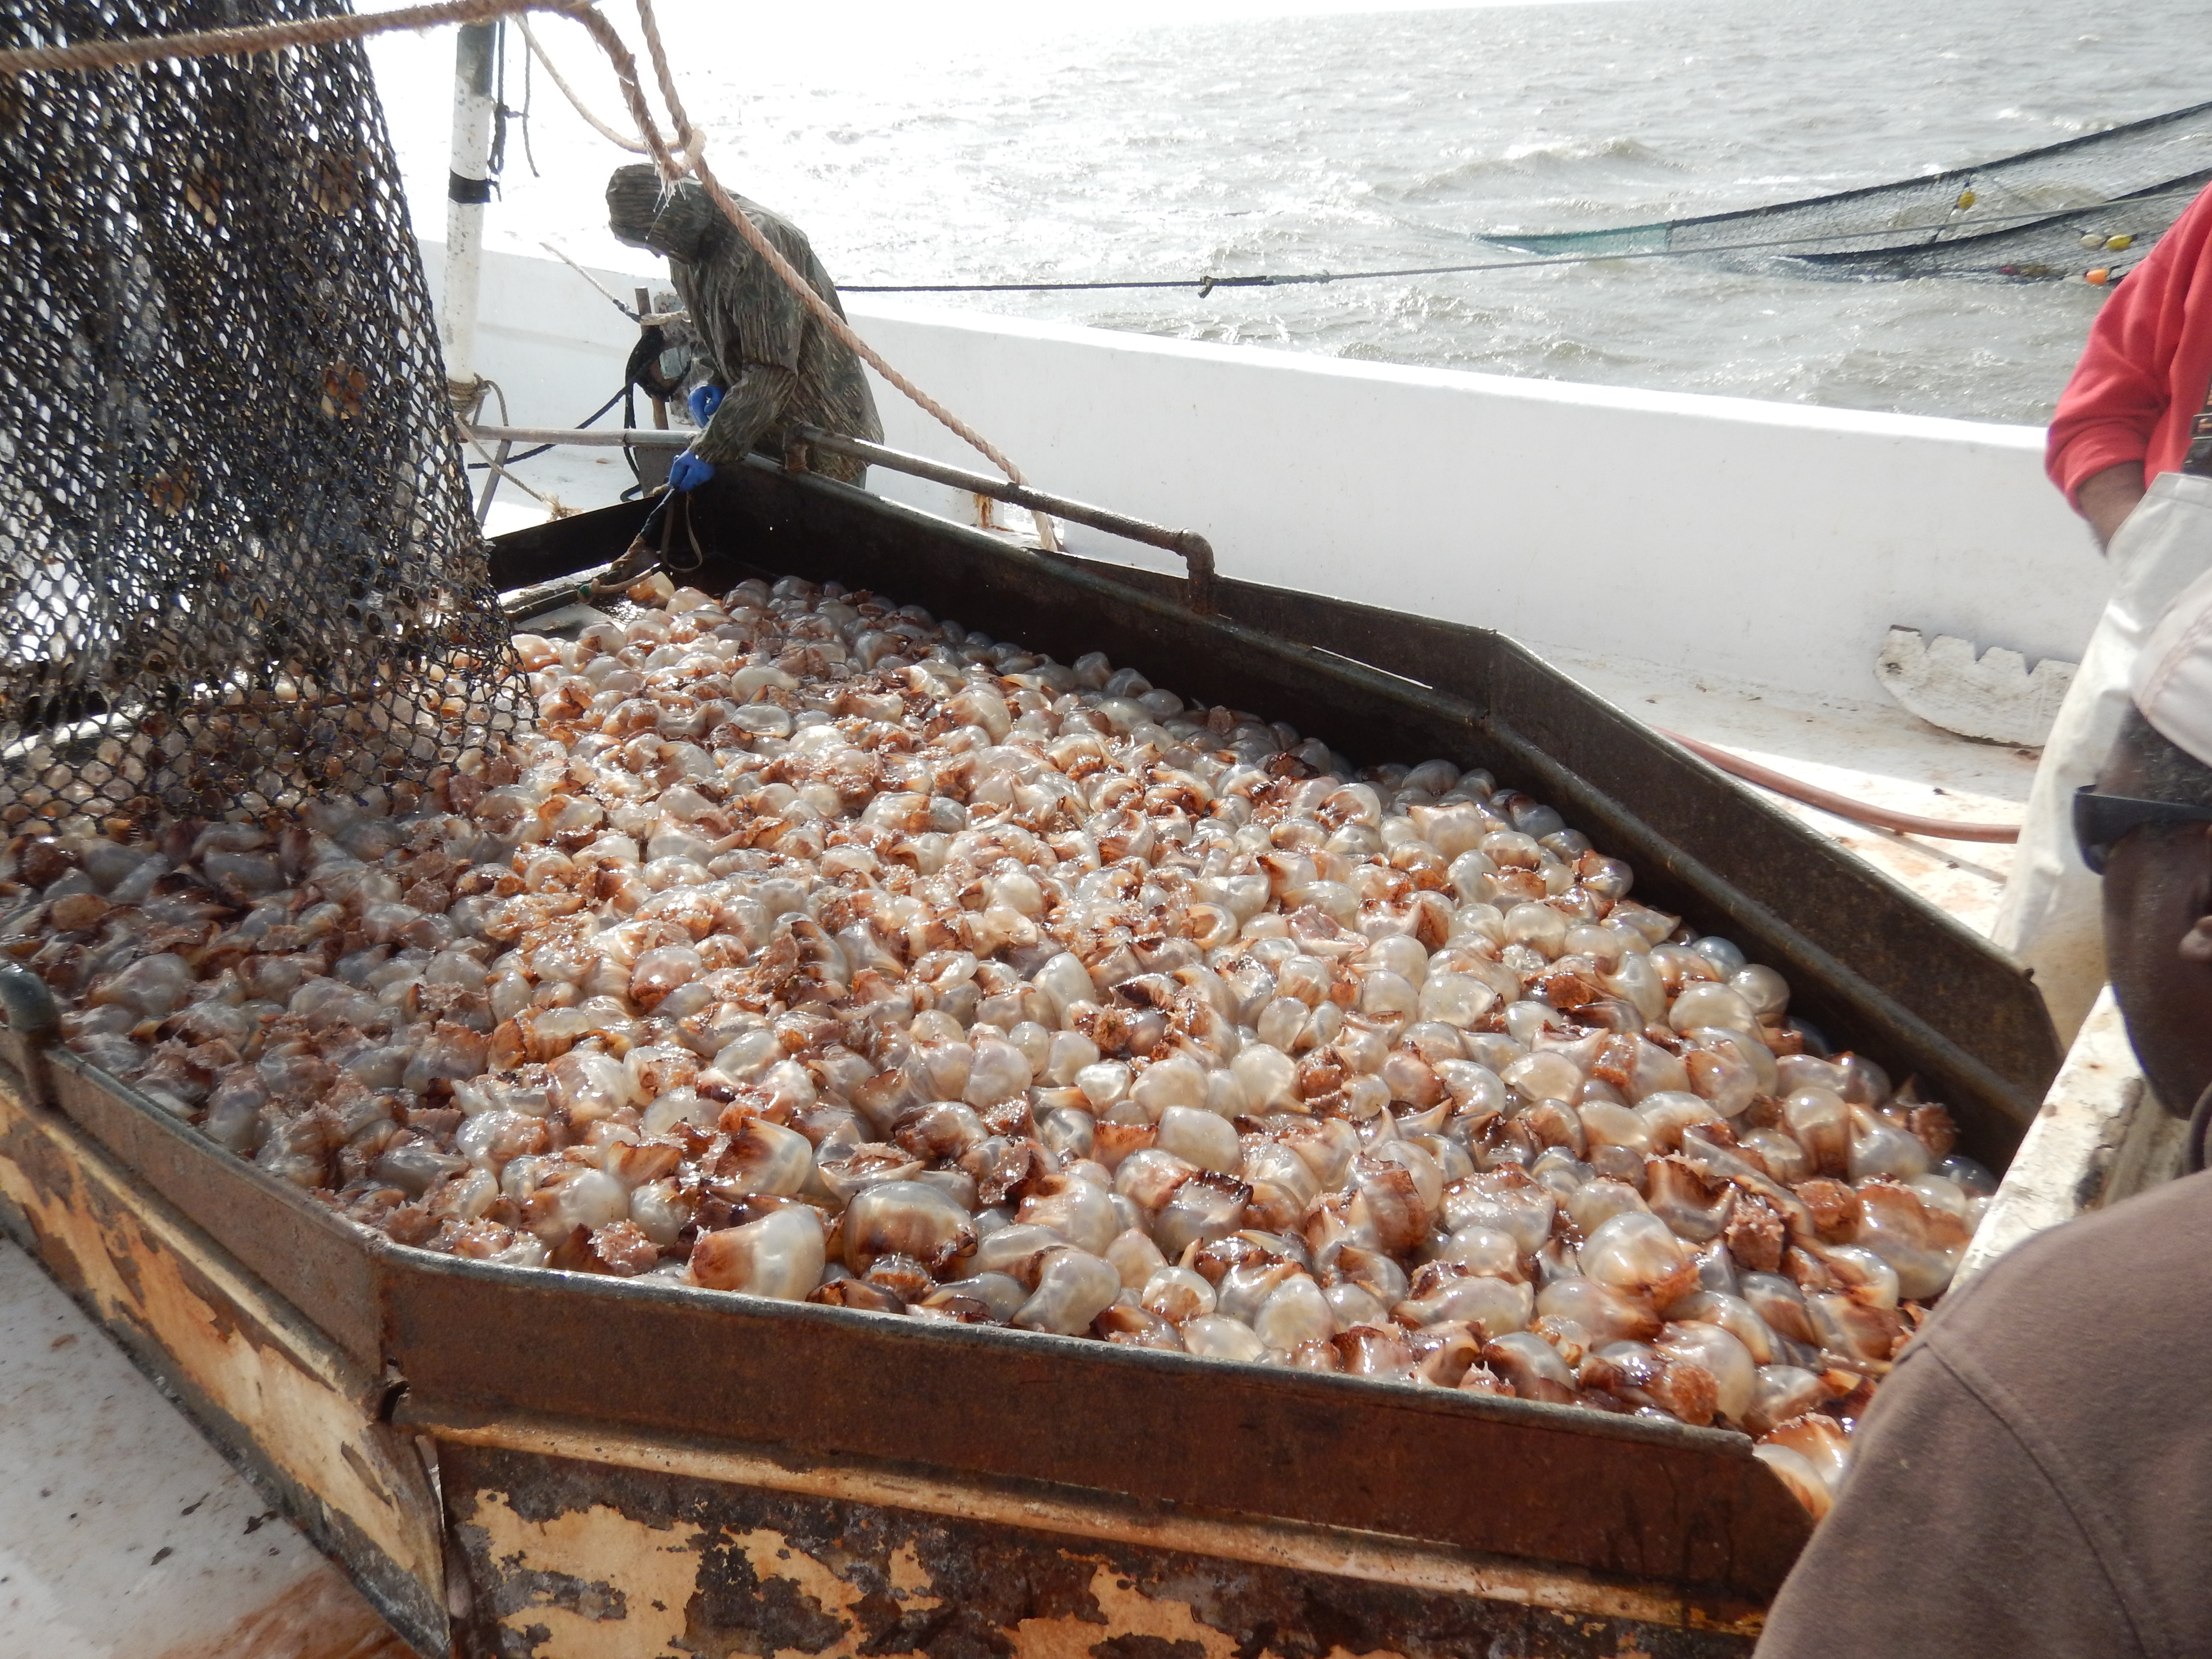 The net full of jellyfish is emptied onto the ship, as fisherman begin to process the haul.